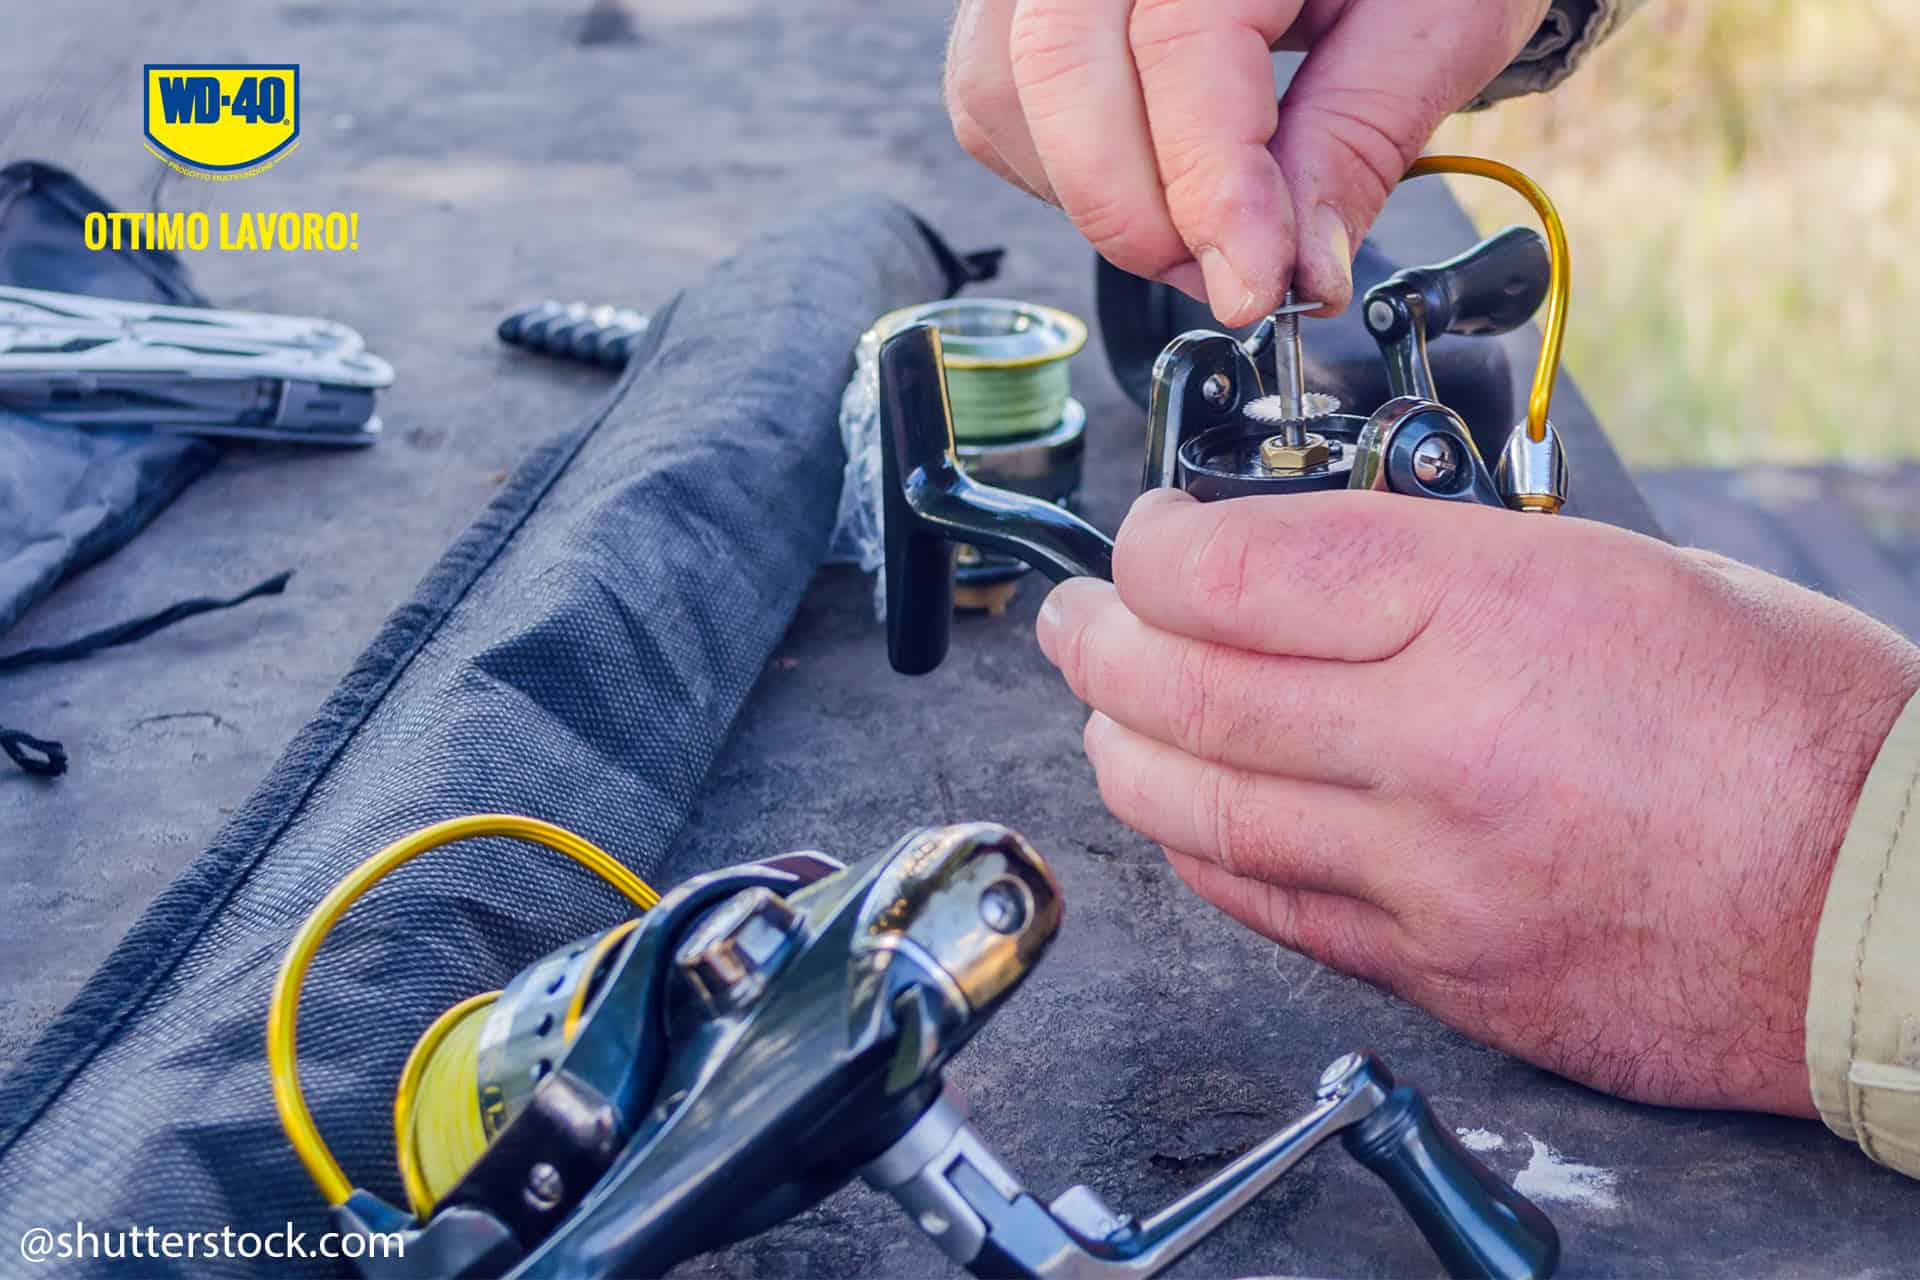 how to carry out fishing reel maintenance 4@shutterstock.com